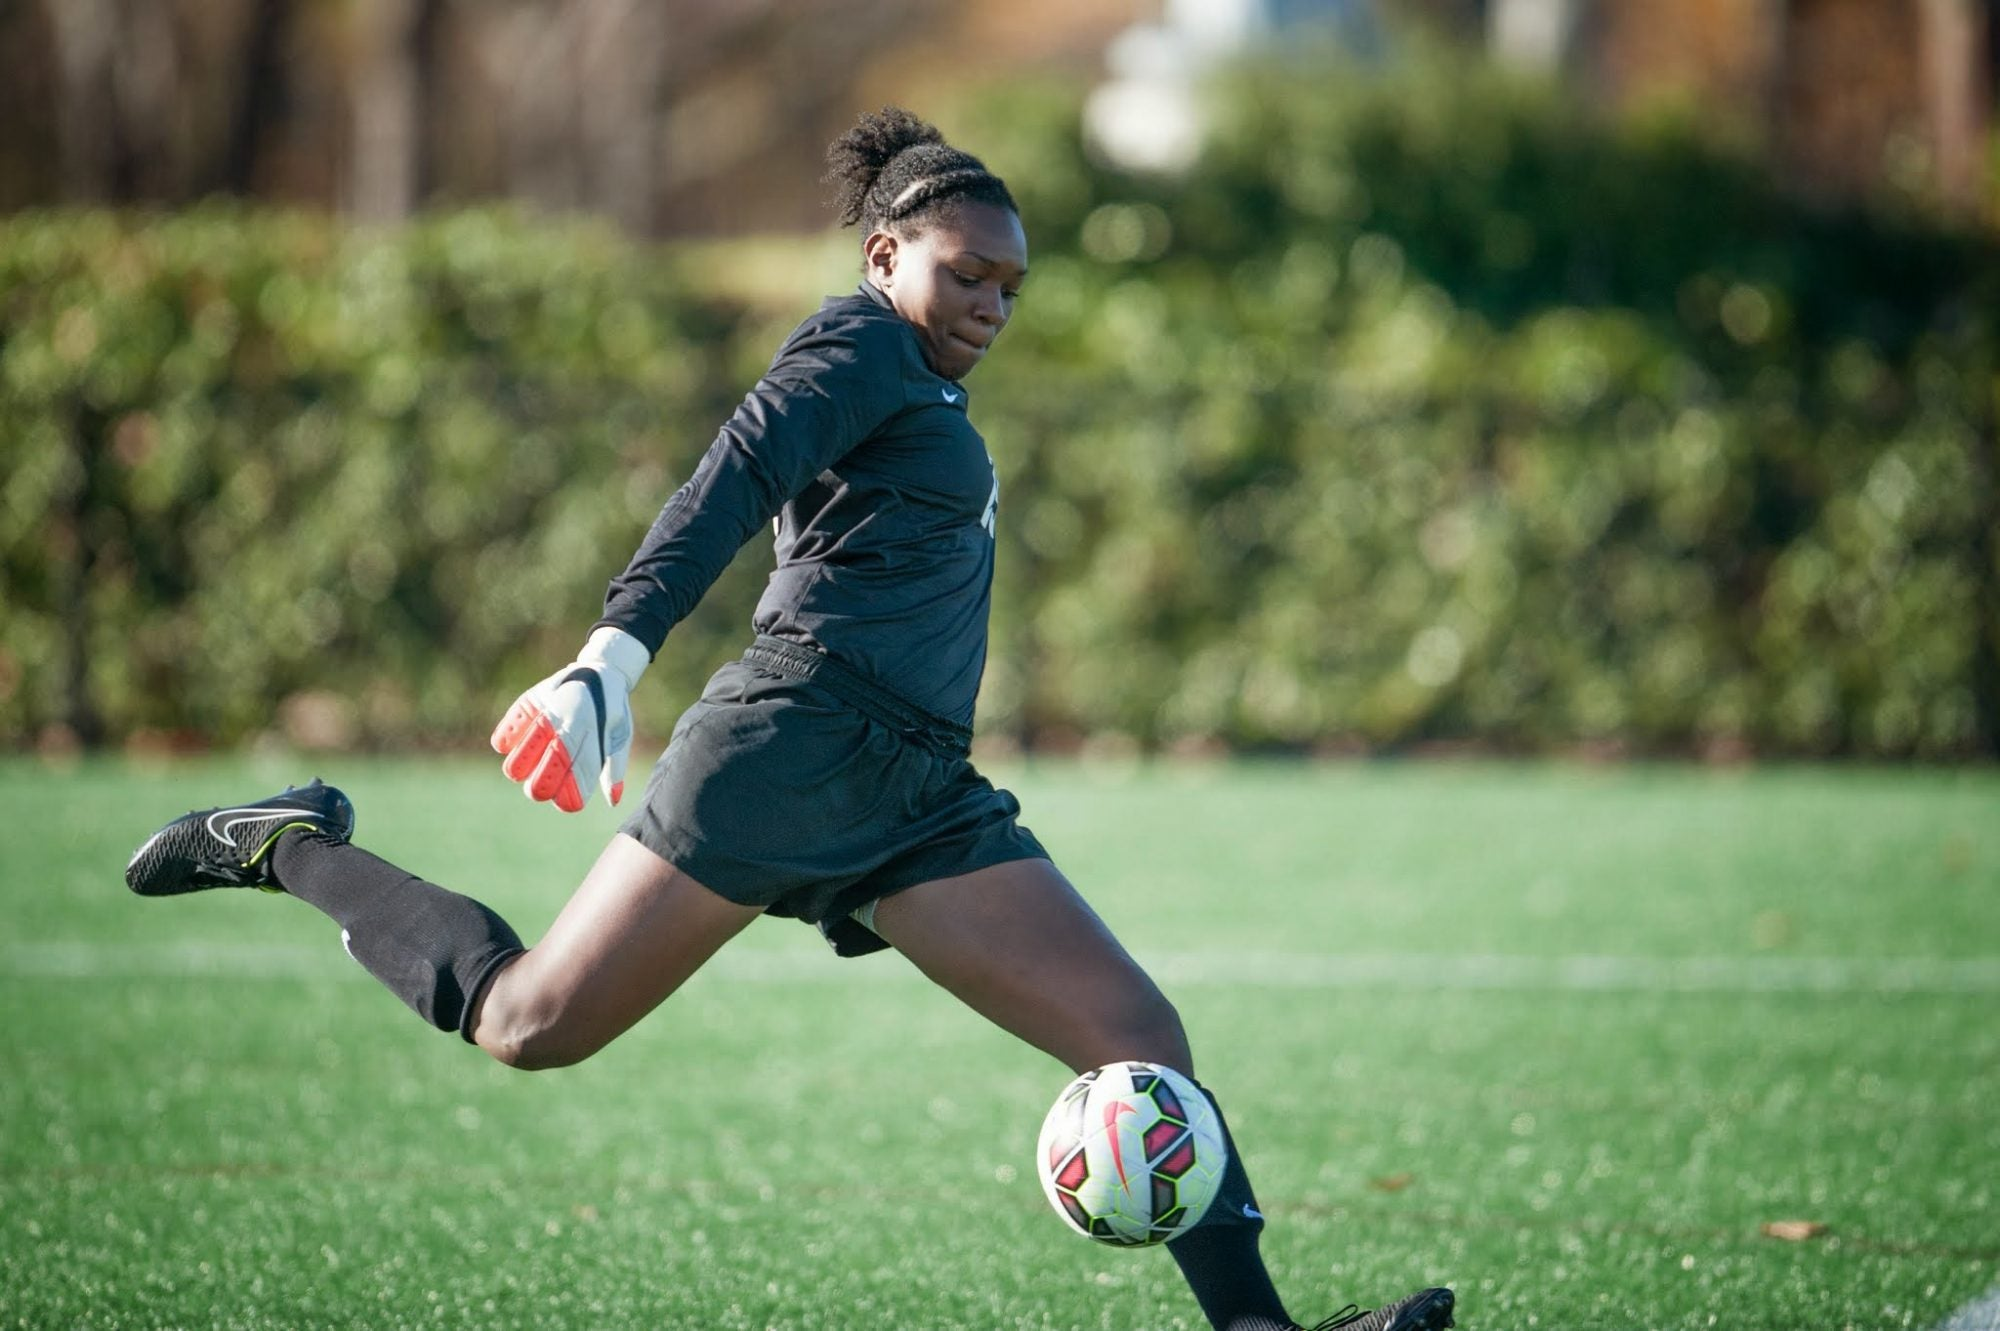 A Harvard student playing soccer